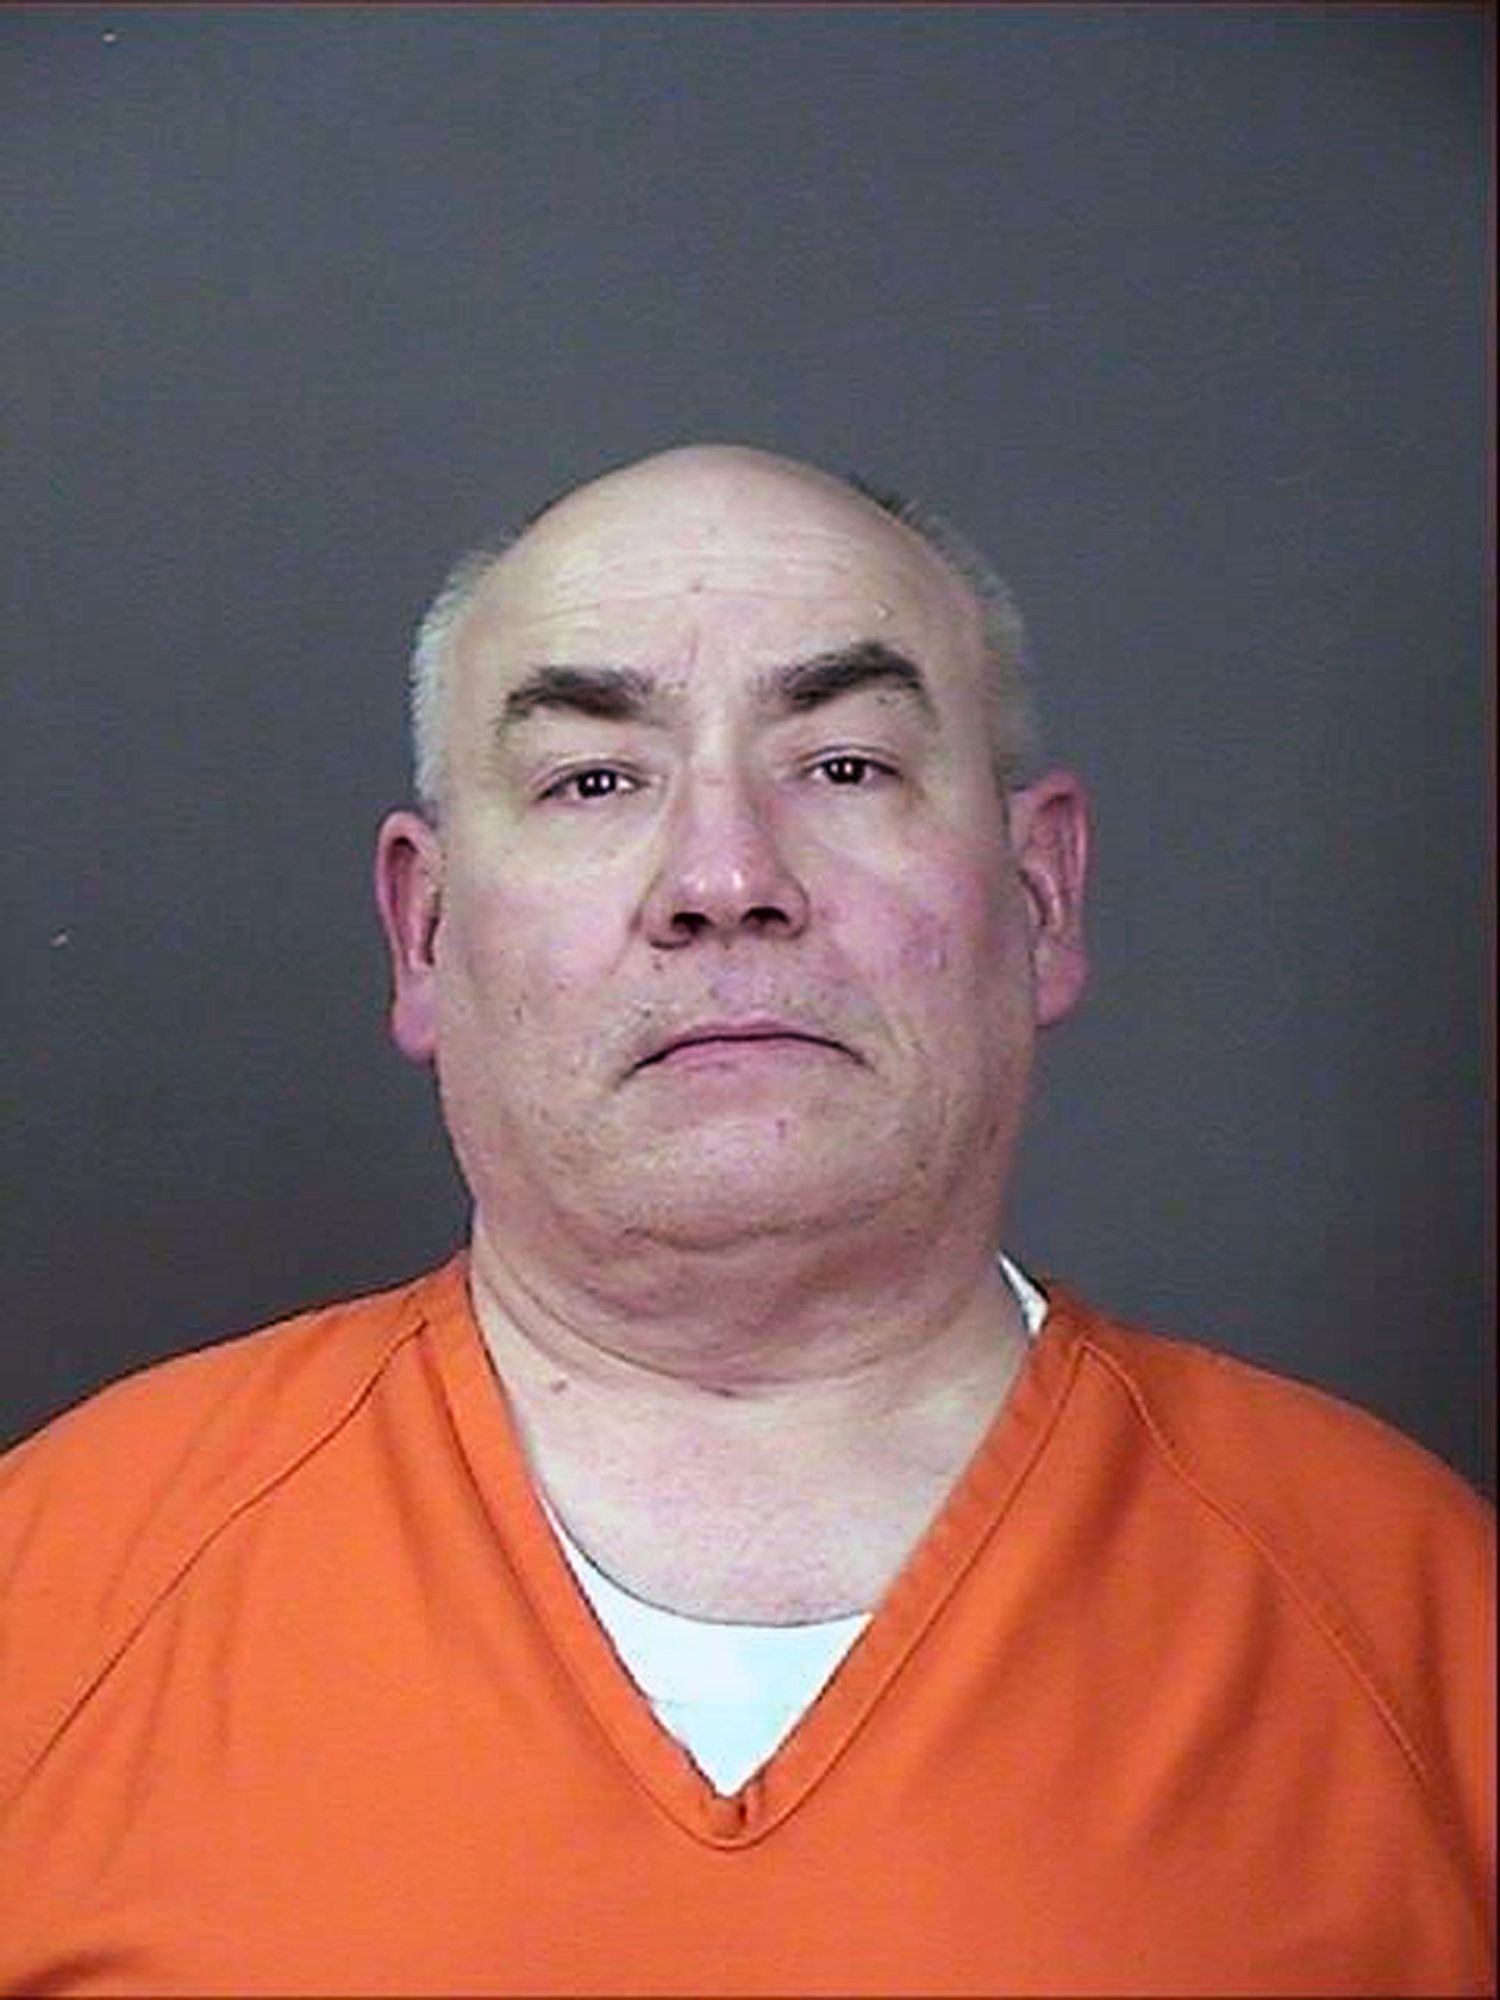 Daniel (Danny) James Heinrich, 53, who confessed on Tuesday to the 1989 slaying of Jacob Wetterling, is seen in an undated photo released by the Sherburne County Sheriff's Office in Zimmerman, Minnesota, U.S.   Sherburne County Sheriff's Office/Handout via Reuters   THIS IMAGE HAS BEEN SUPPLIED BY A THIRD PARTY. IT IS DISTRIBUTED, EXACTLY AS RECEIVED BY REUTERS, AS A SERVICE TO CLIENTS. FOR EDITORIAL USE ONLY. NOT FOR SALE FOR MARKETING OR ADVERTISING CAMPAIGNS